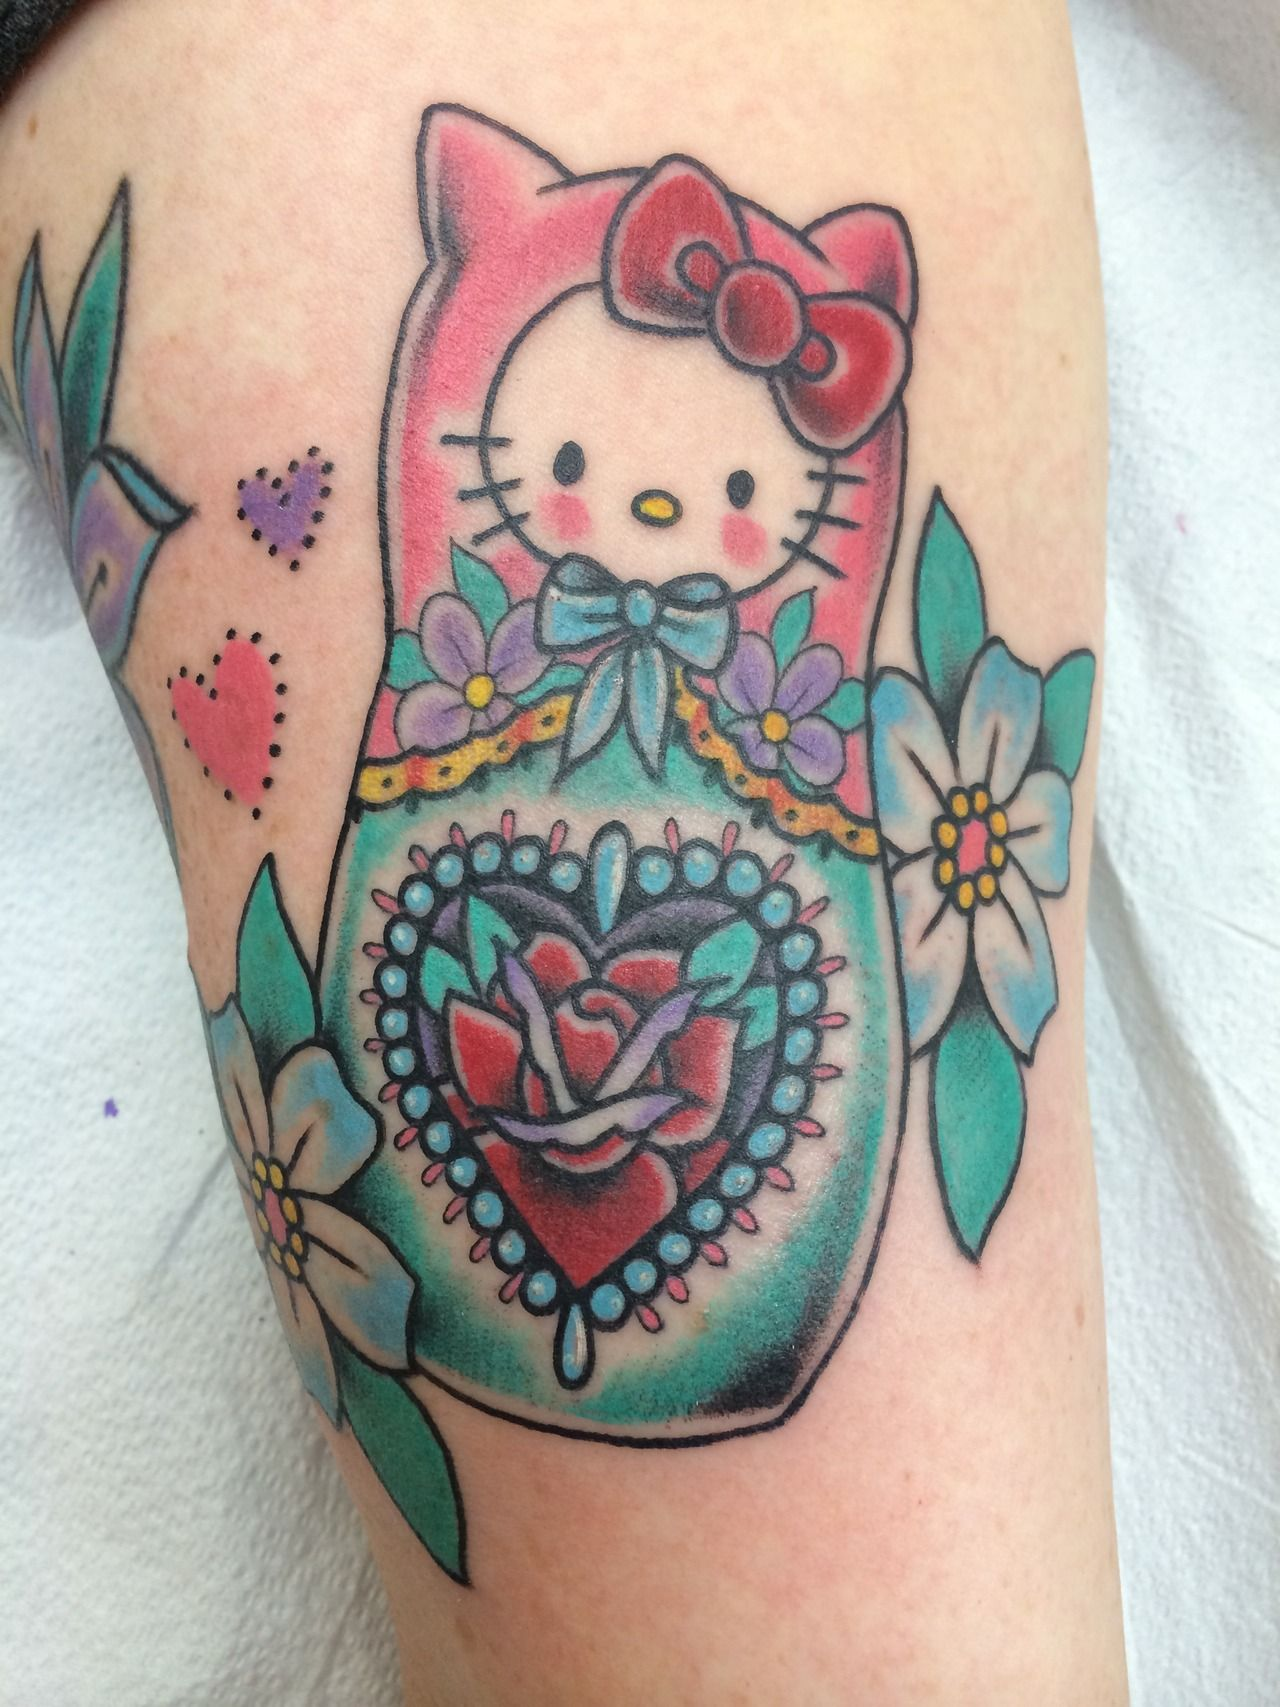 Hello Kitty Matryoshka By Candice Bauman Autumn Moon Tattoo Anaheim Ca Instagram Candeeo Tumblr Goldenbough Hello Kitty Tattoos Moon Tattoo Hello Kitty